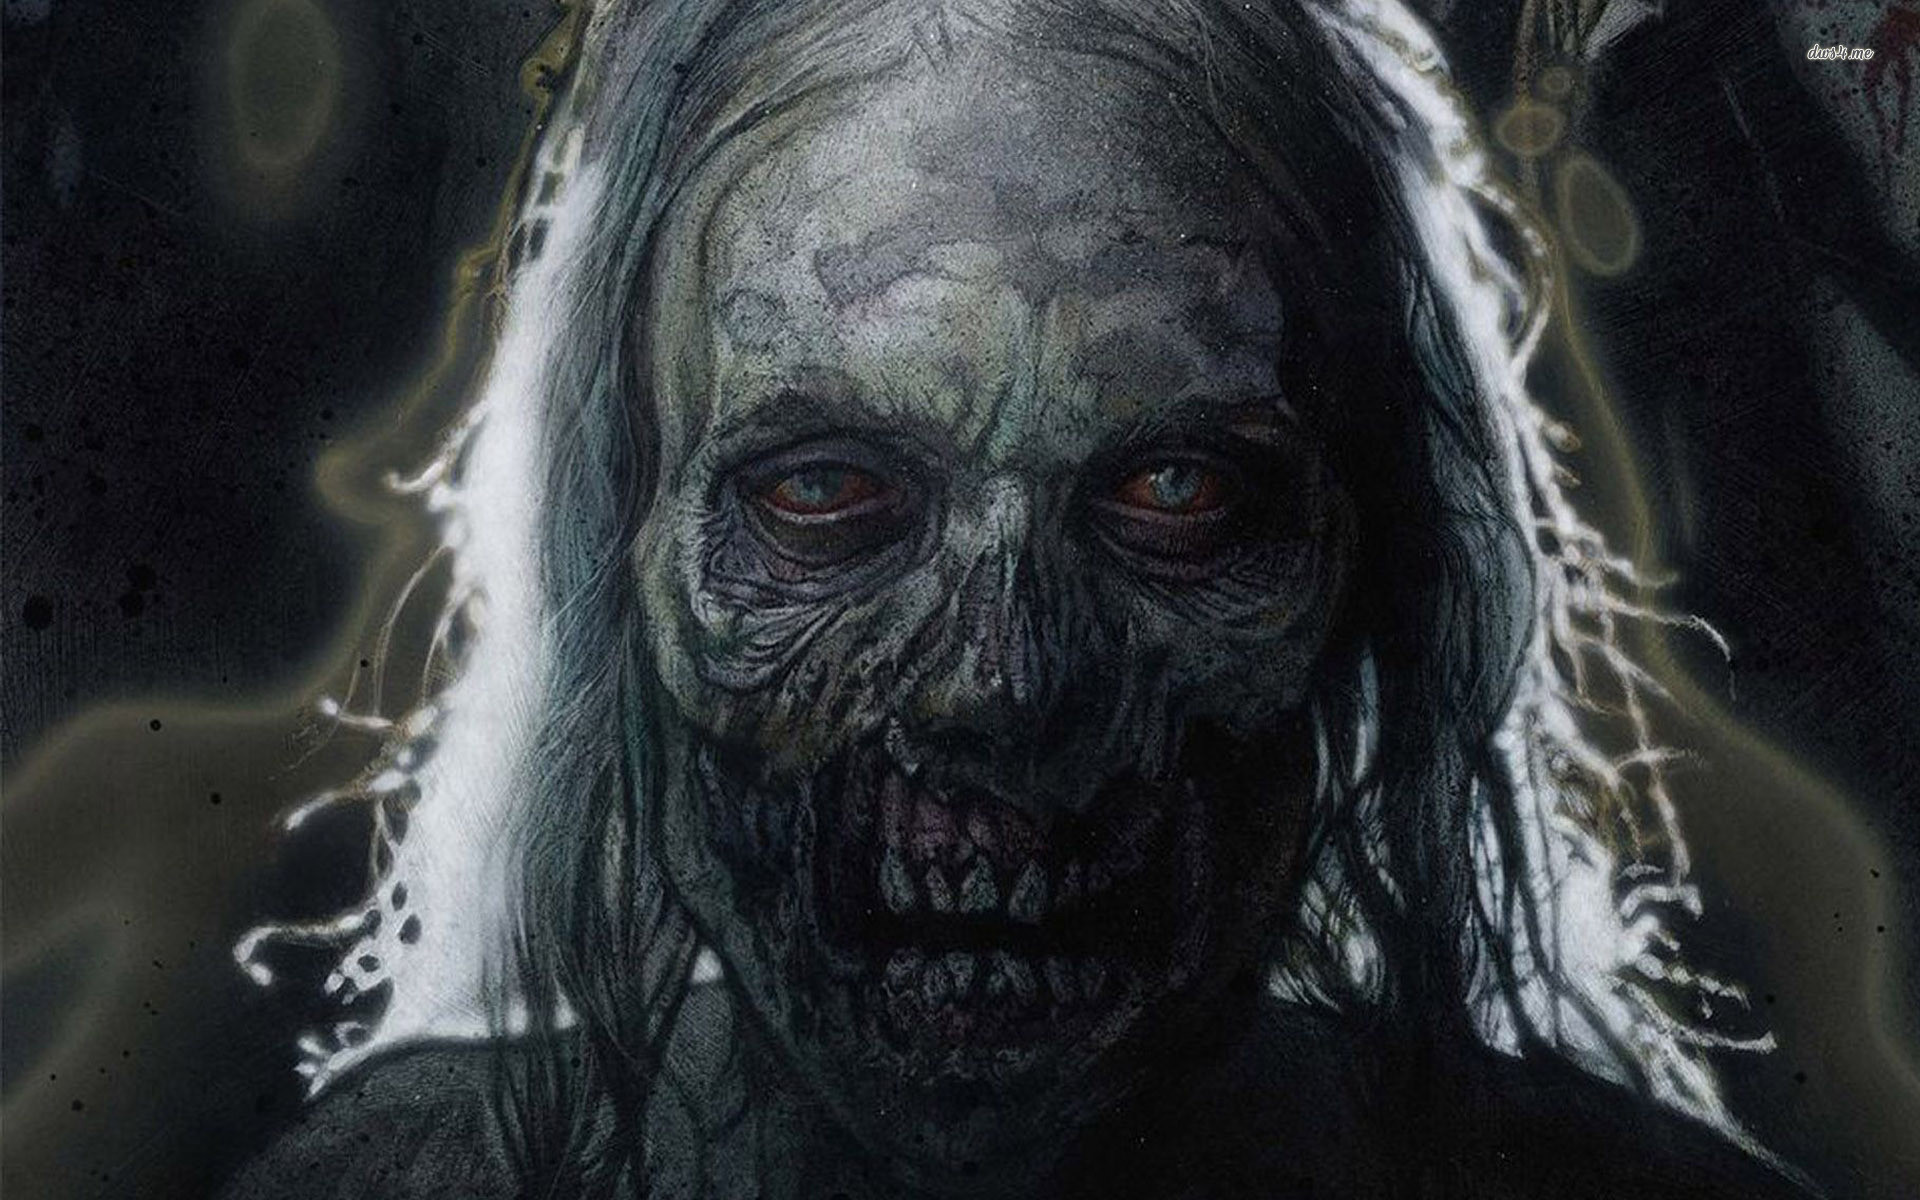 Zombies Wallpaper 1920x1080 Scary Zombie Wa...